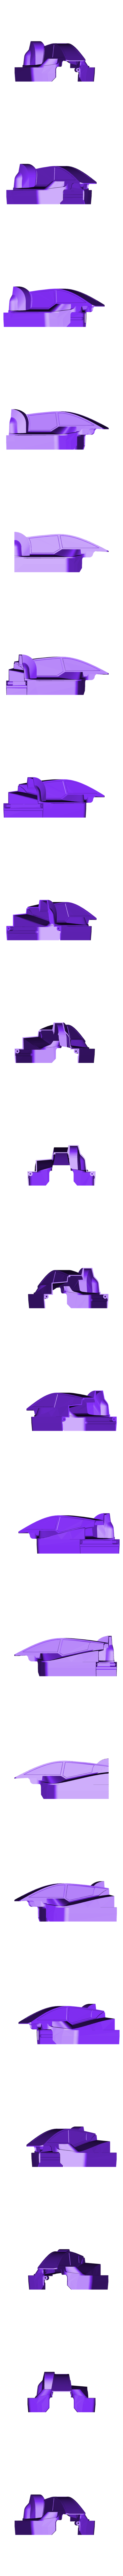 Body03.STL Download free STL file Mk Ultra - 3D printable 1/10 4wd buggy • Object to 3D print, tahustvedt